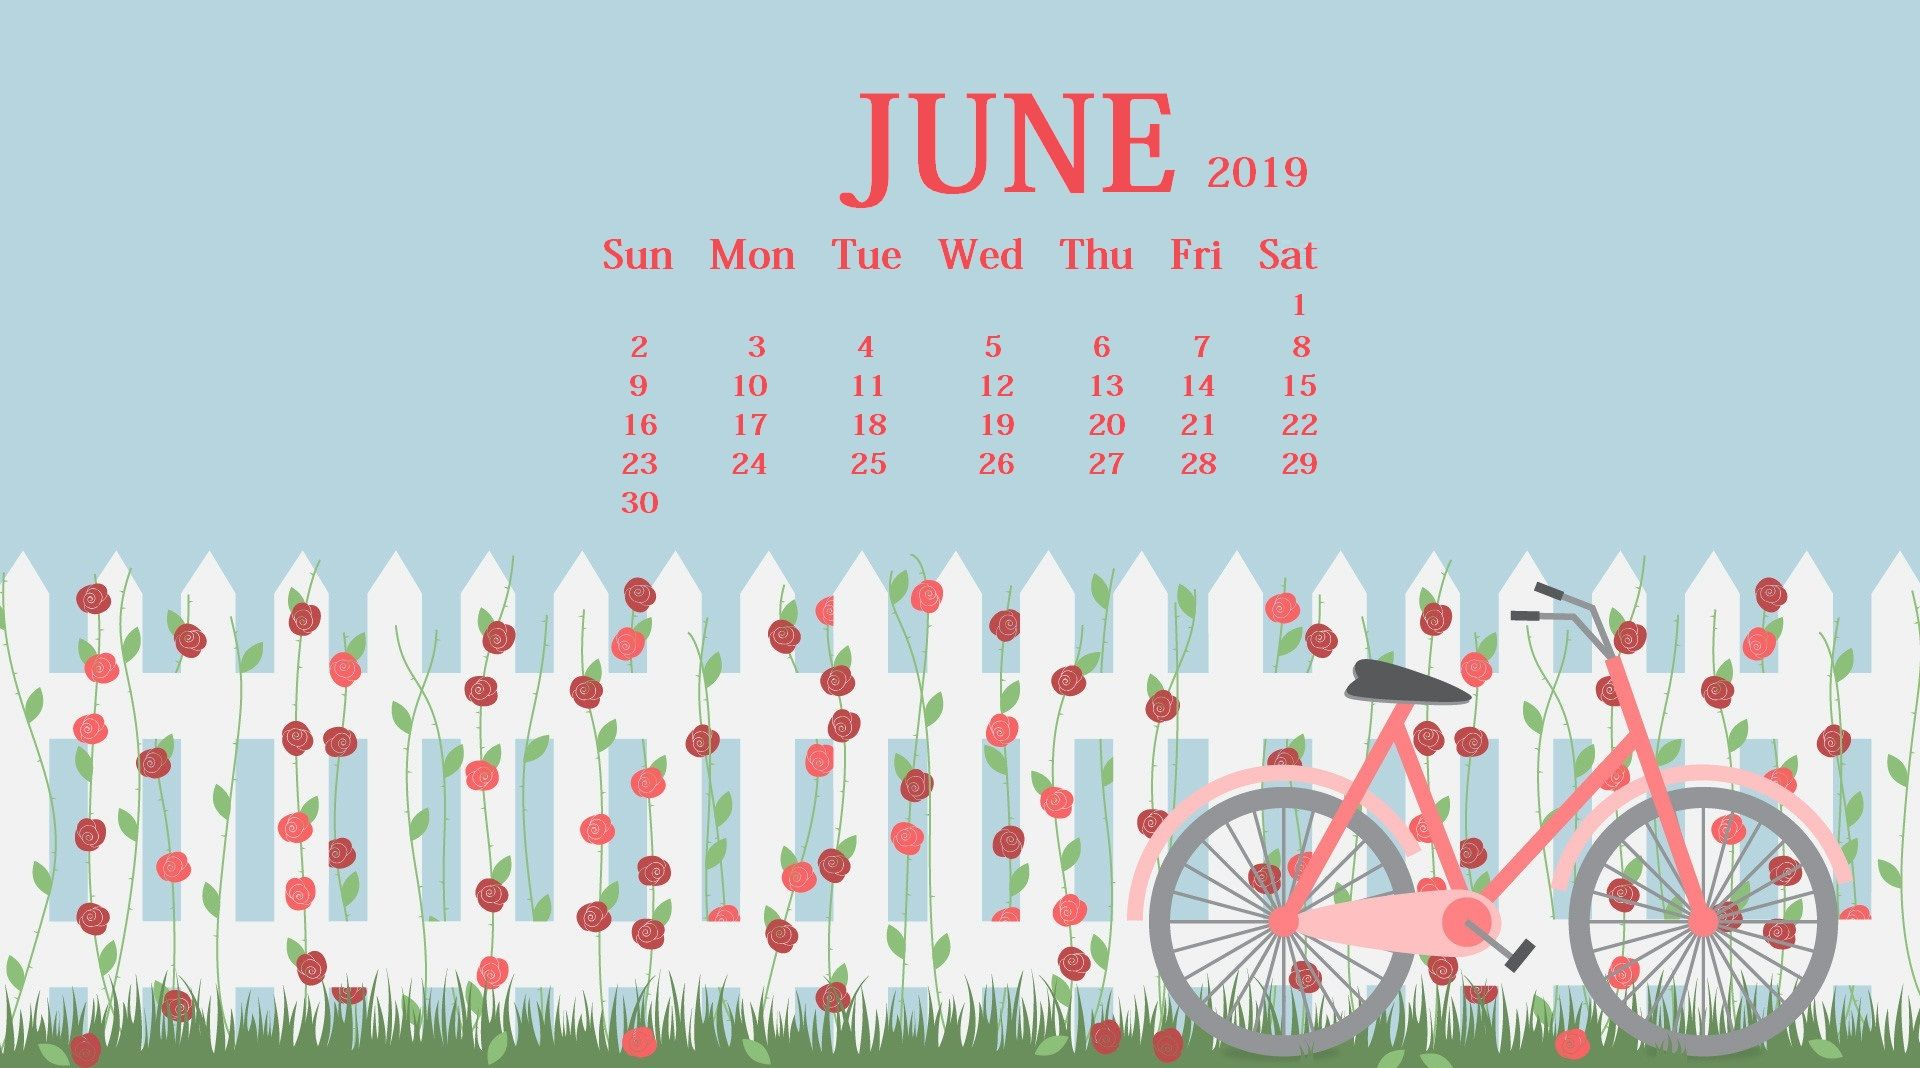 June 2019 HD Calendar Wallpaper